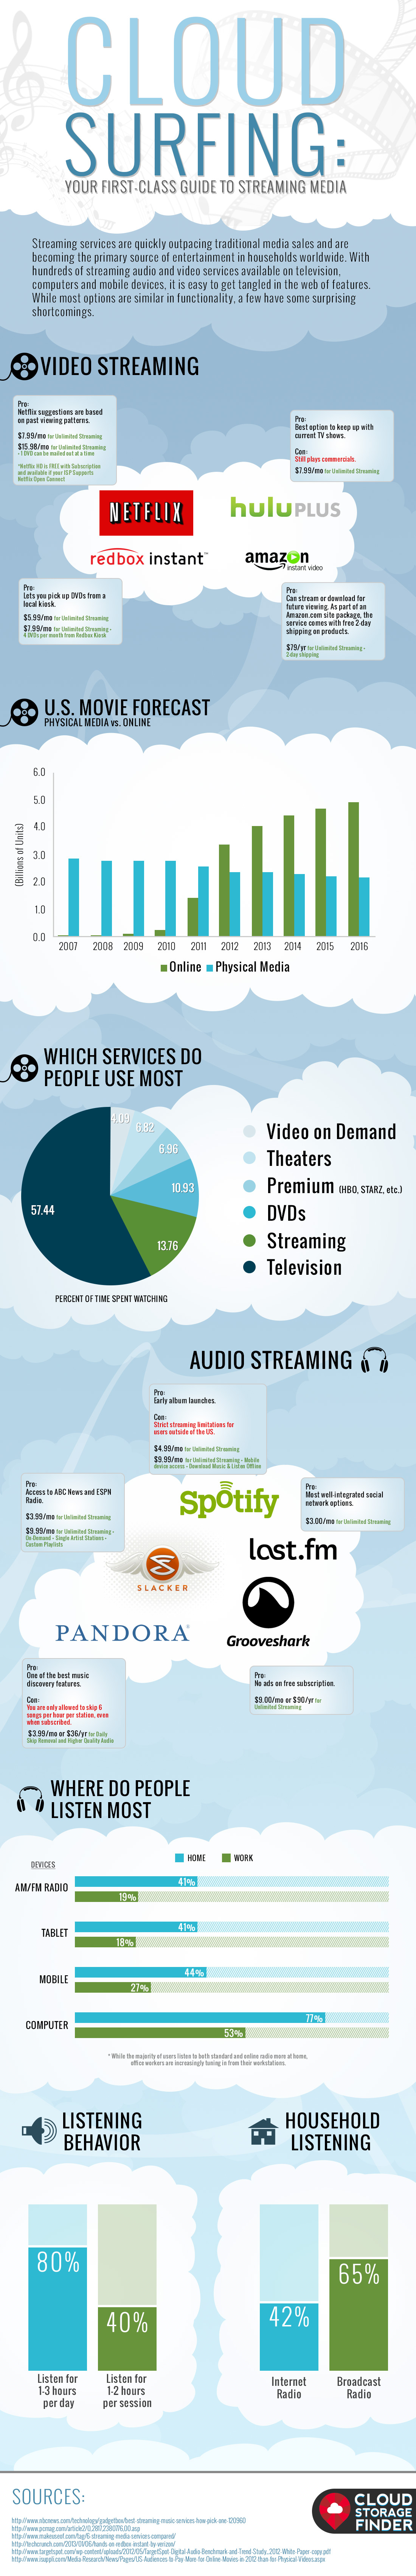 No Body Wax Needed When Cloud Surfing [Infographic]